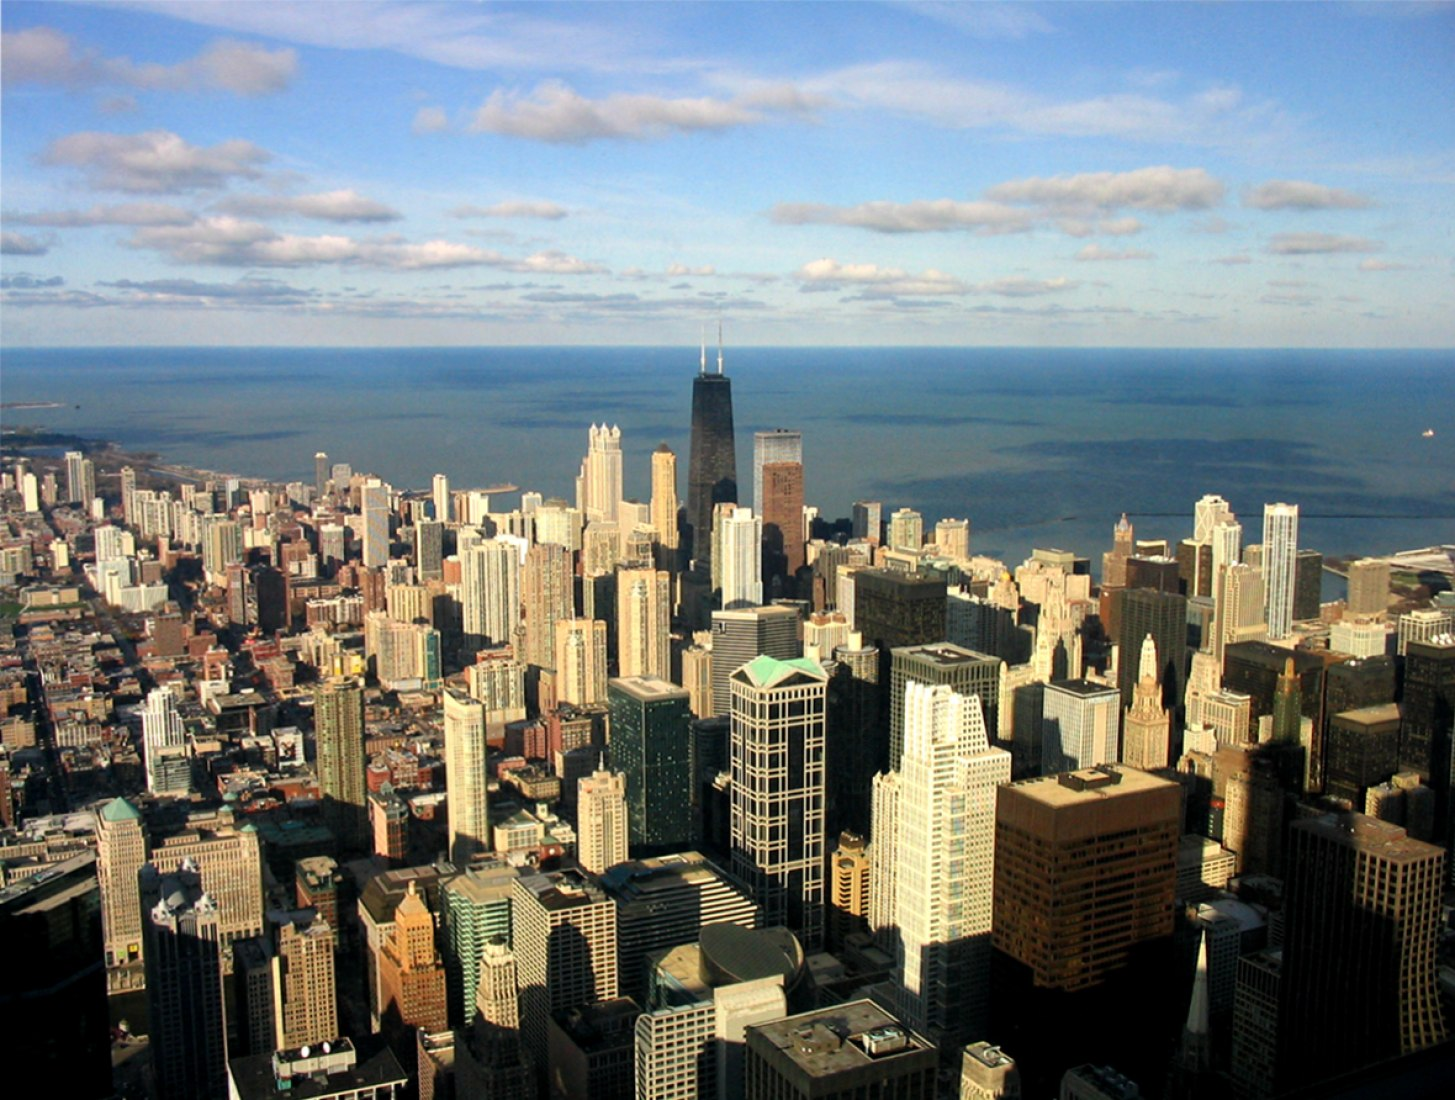 Aerial view. John Hancock Center by Skidmore, Owings & Merrill, skyline of Chicago from the Sears Tower. Photography courtesy Creative Commons by Dori.